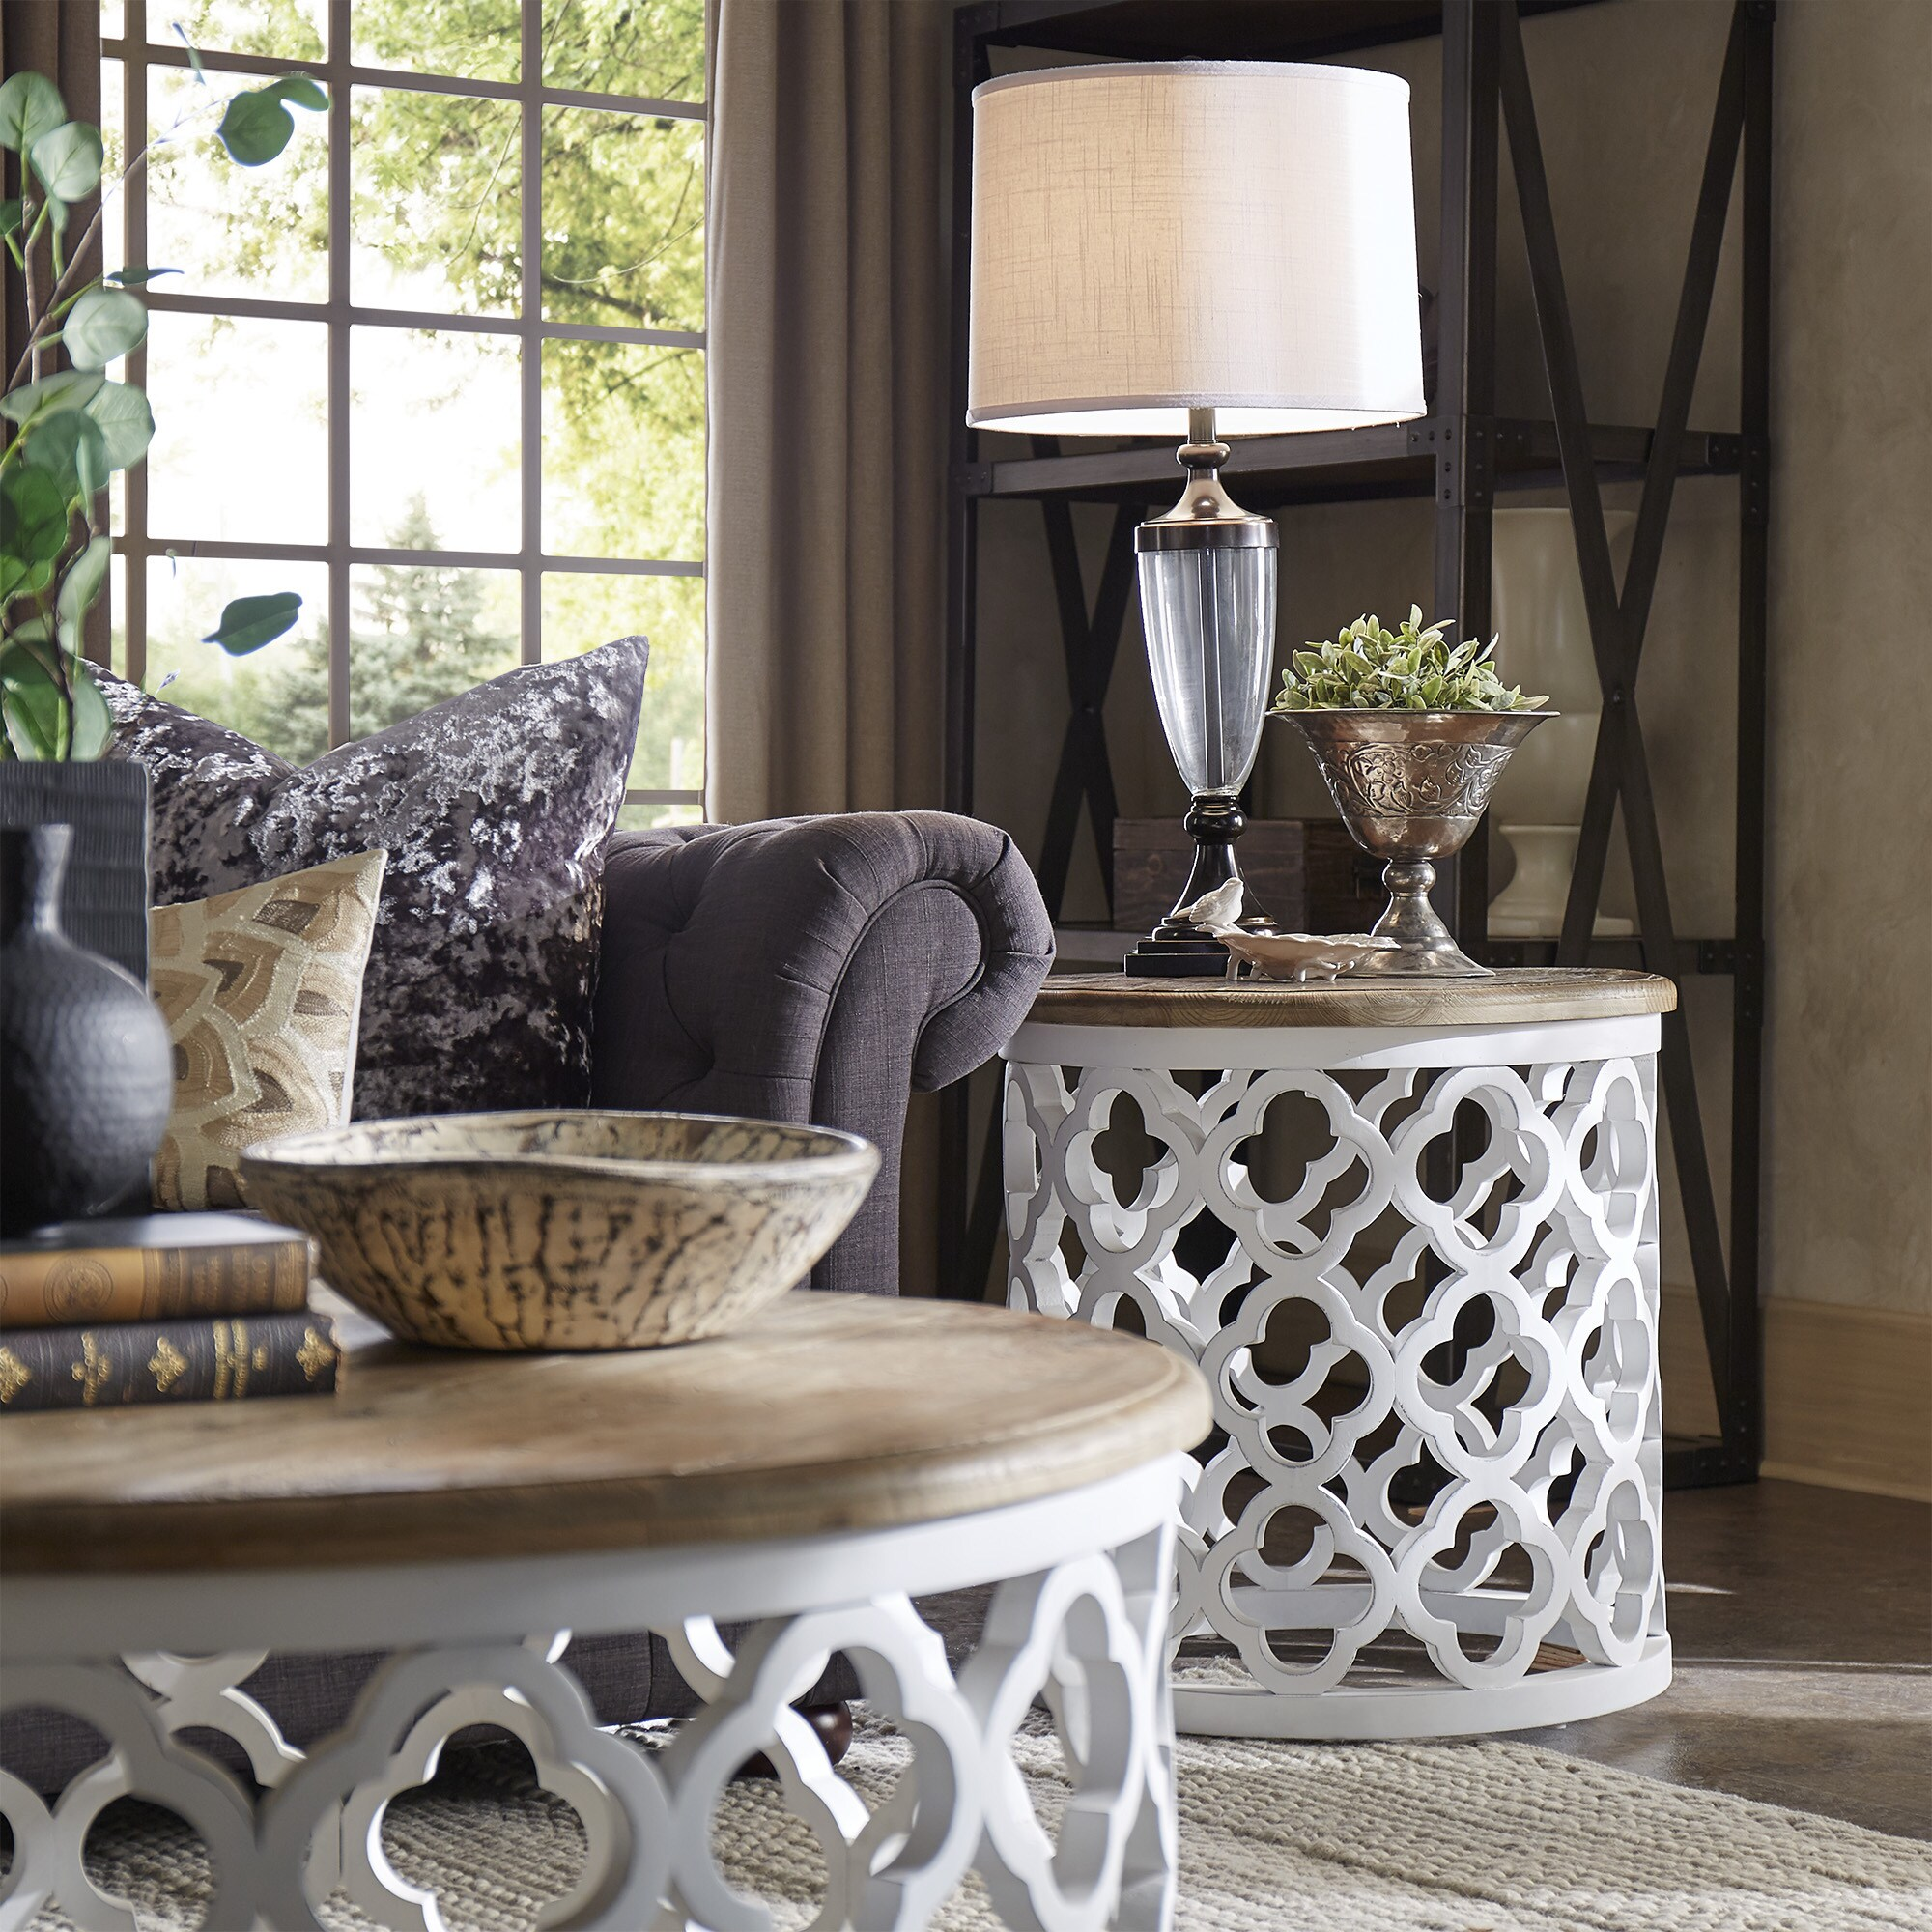 Vince Reclaimed Wood Moroccan Trellis Drum Accent Table by iNSPIRE Q  Artisan - Free Shipping Today - Overstock.com - 18970339